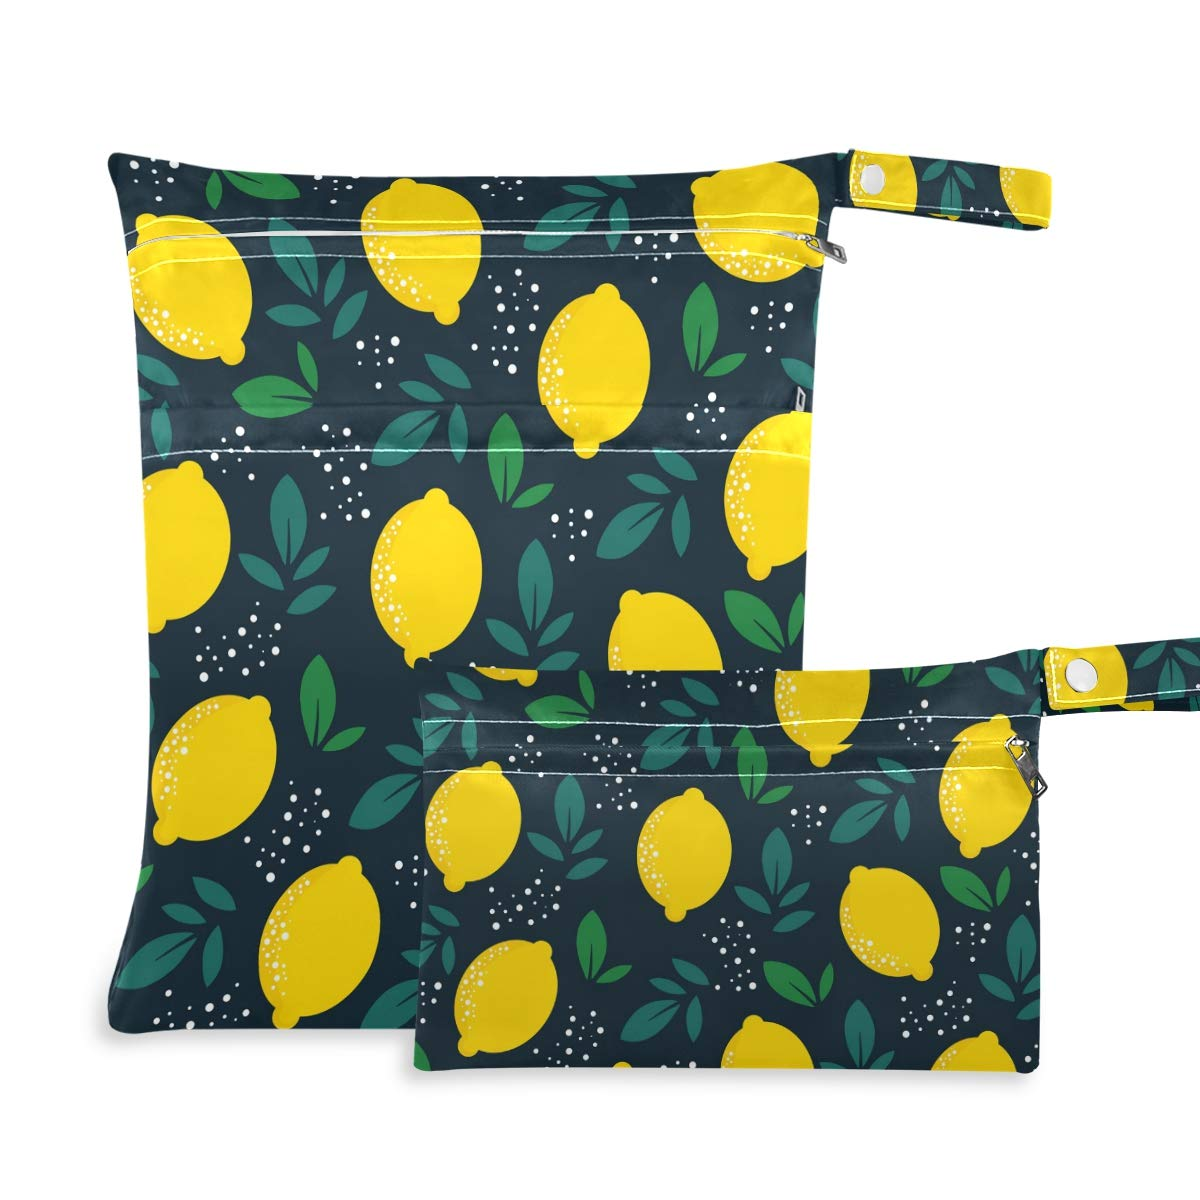 Moudou 2pcs Lemon Wet Dry Bag Waterproof Reusable Baby Cloth Diaper Wet Dry Organizer with Two Zippered Pockets for Travel, Beach, Pool, Stroller, Diapers, Dirty Gym Clothes, Wet Swimsuits